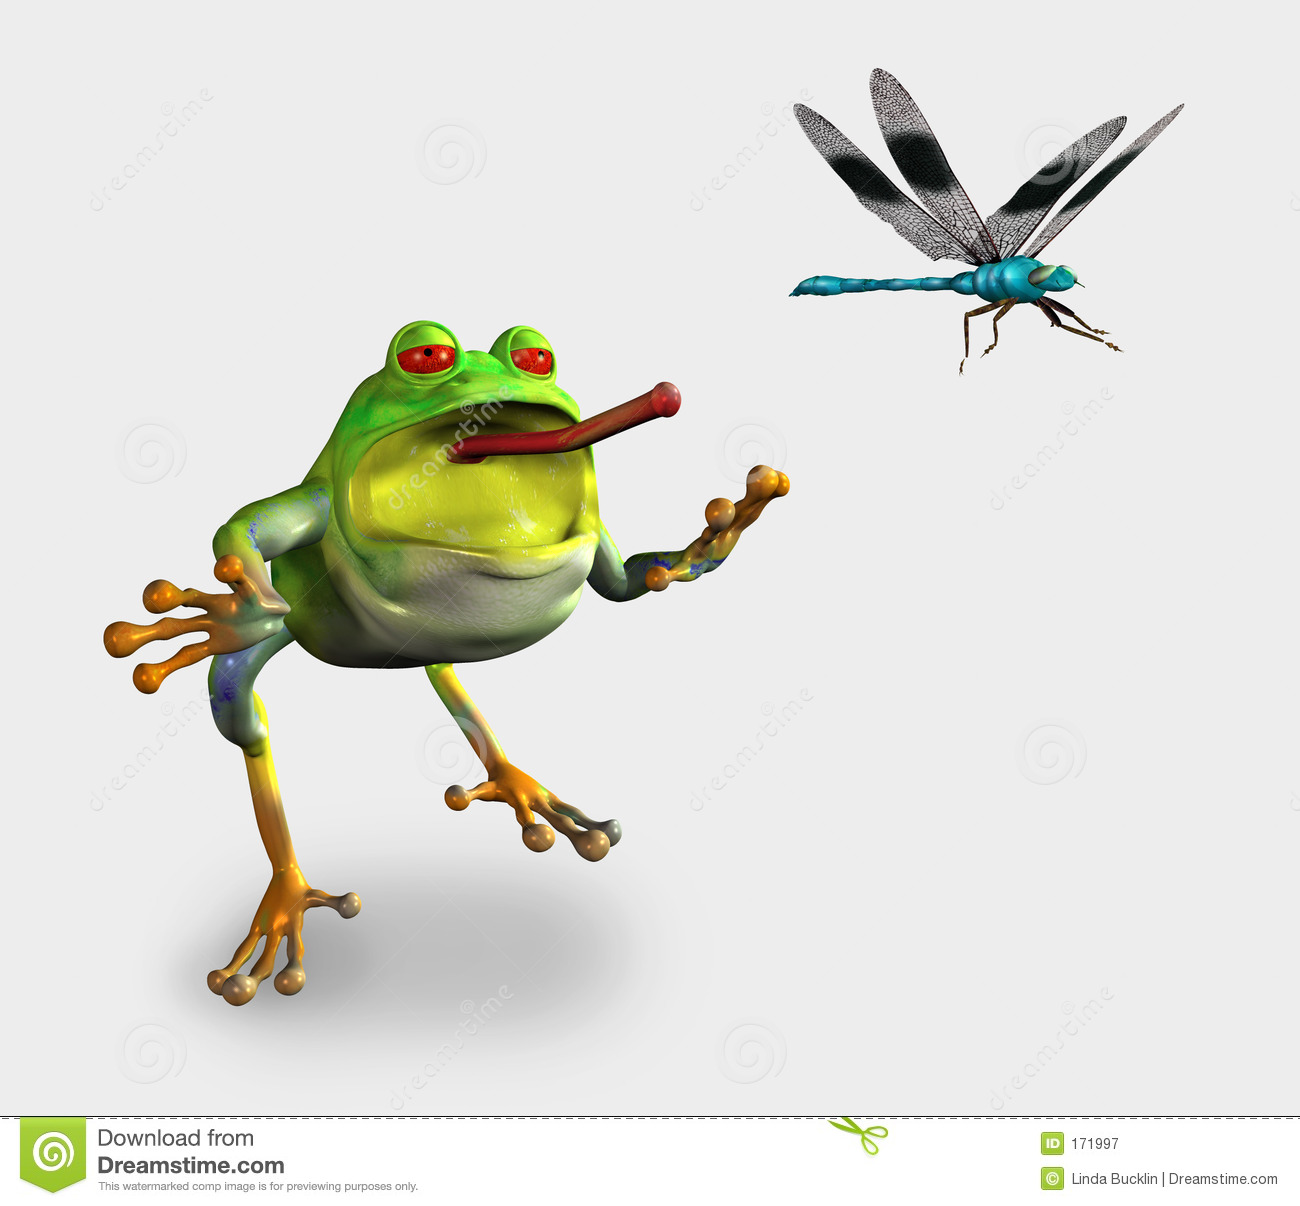 Frog Chasing a Dragonfly - includes clipping path